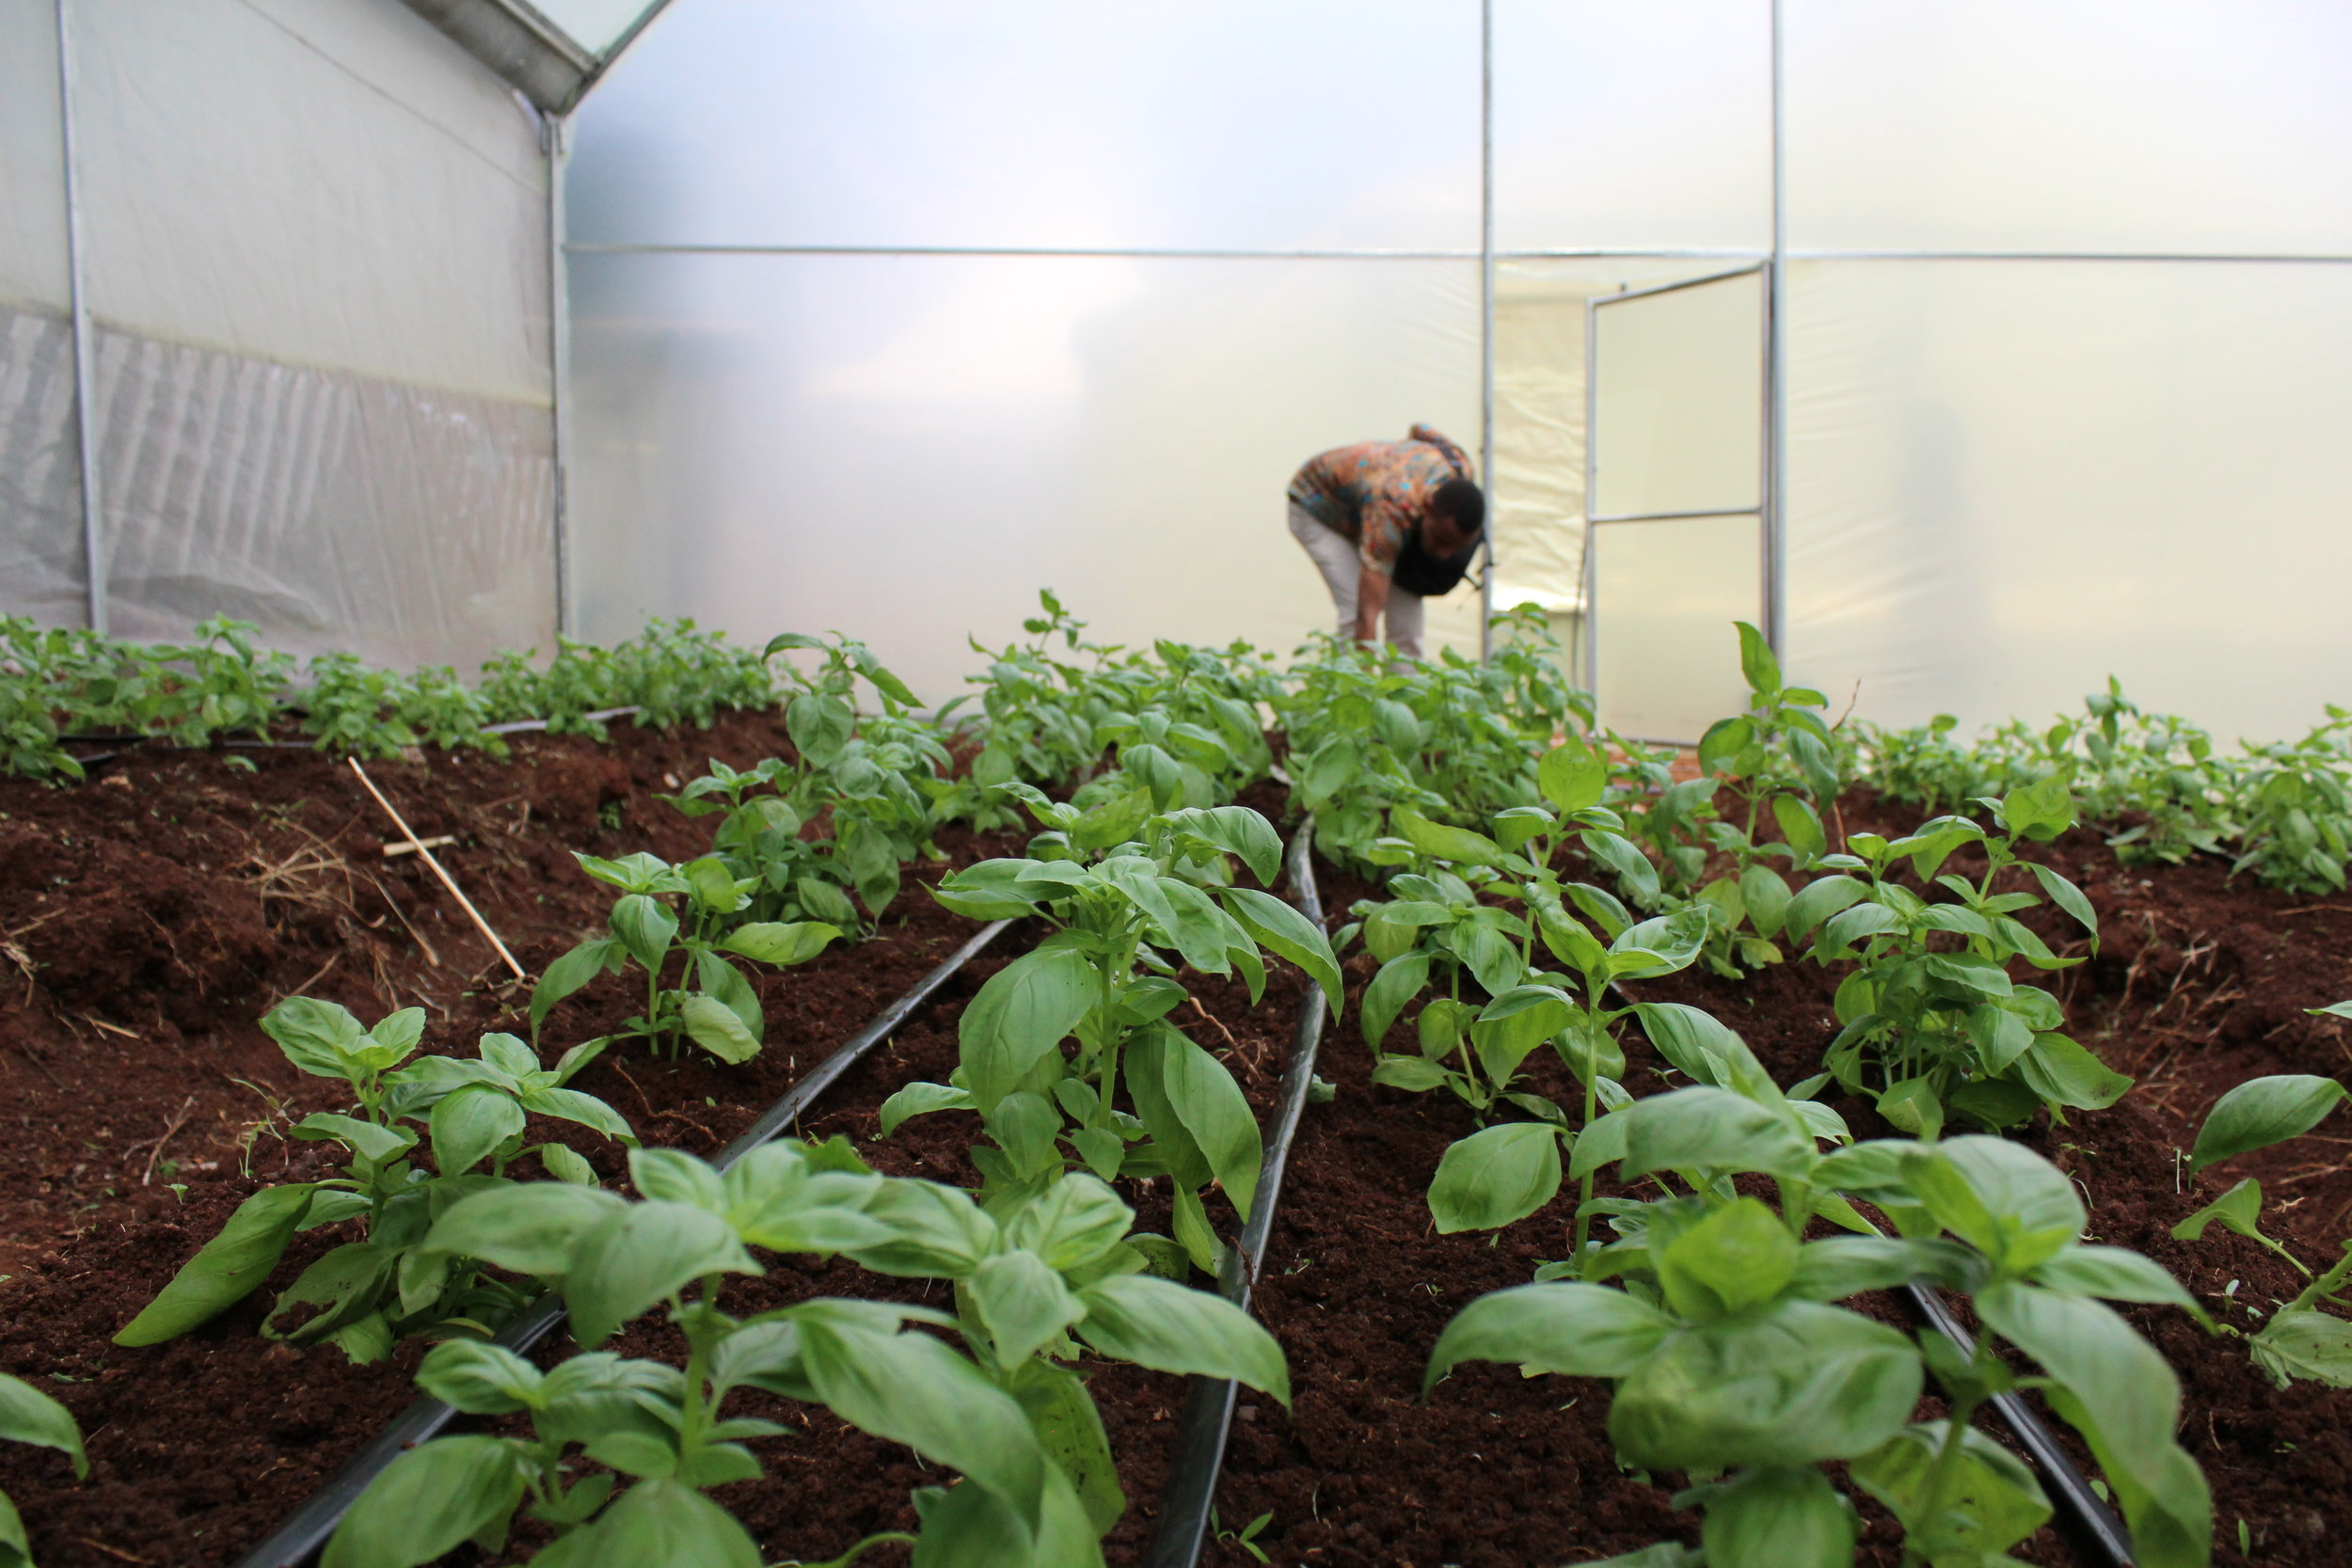 A farmer inspecting her vegetables in a greenhouse installed by Illuminum Greenhouses